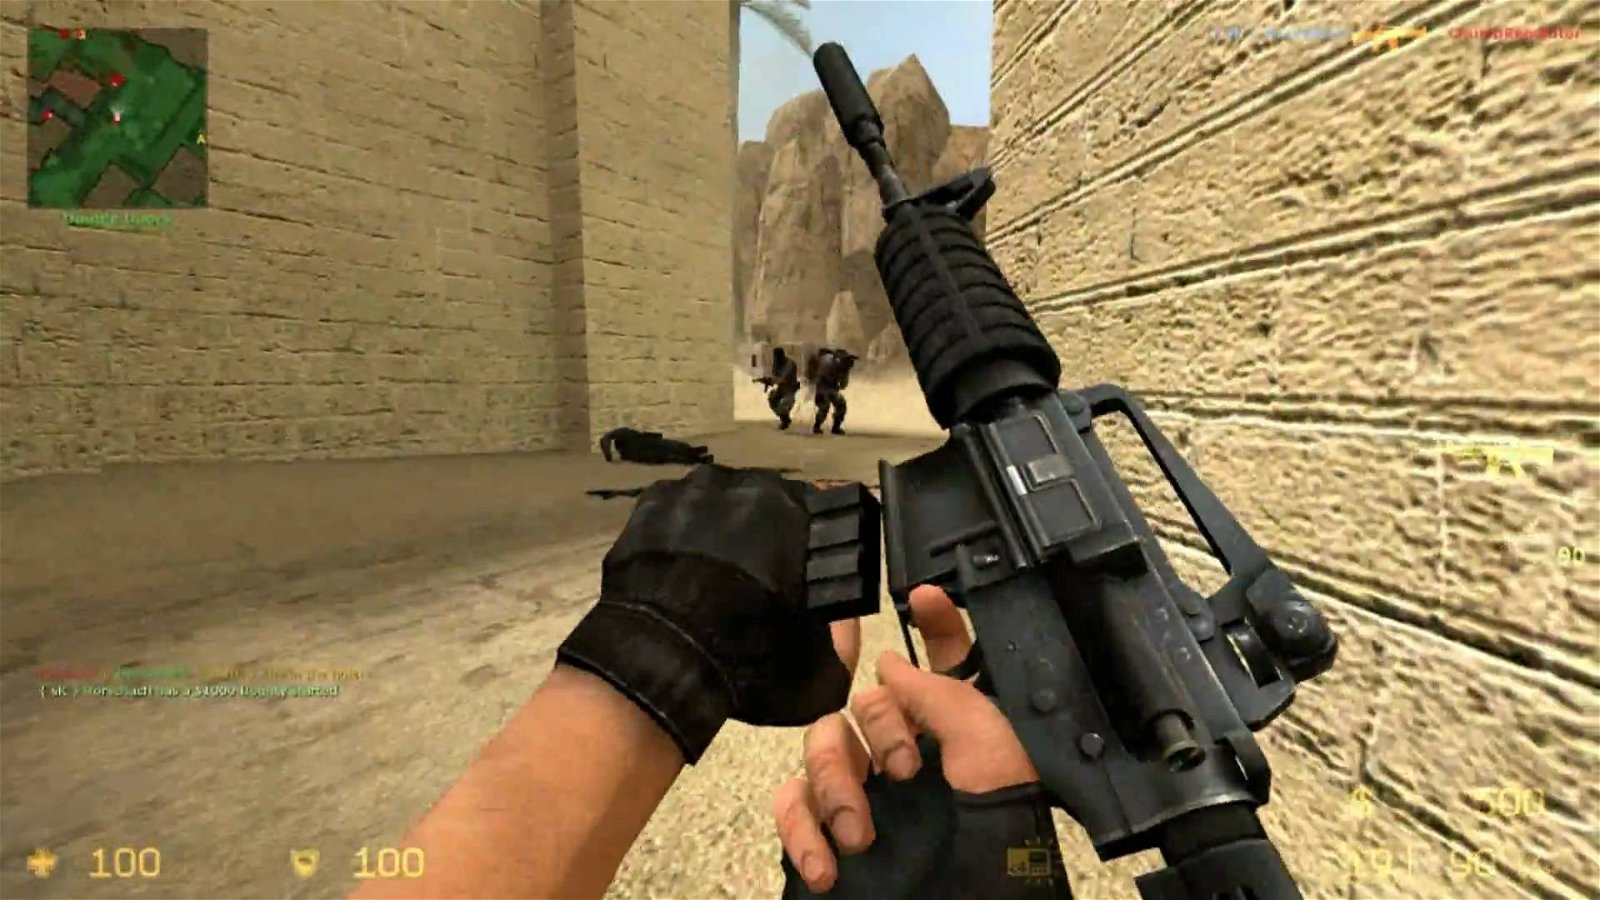 Download counter strike 16 for android apk full installation download counter strike 16 for android apk full installation instructions voltagebd Choice Image